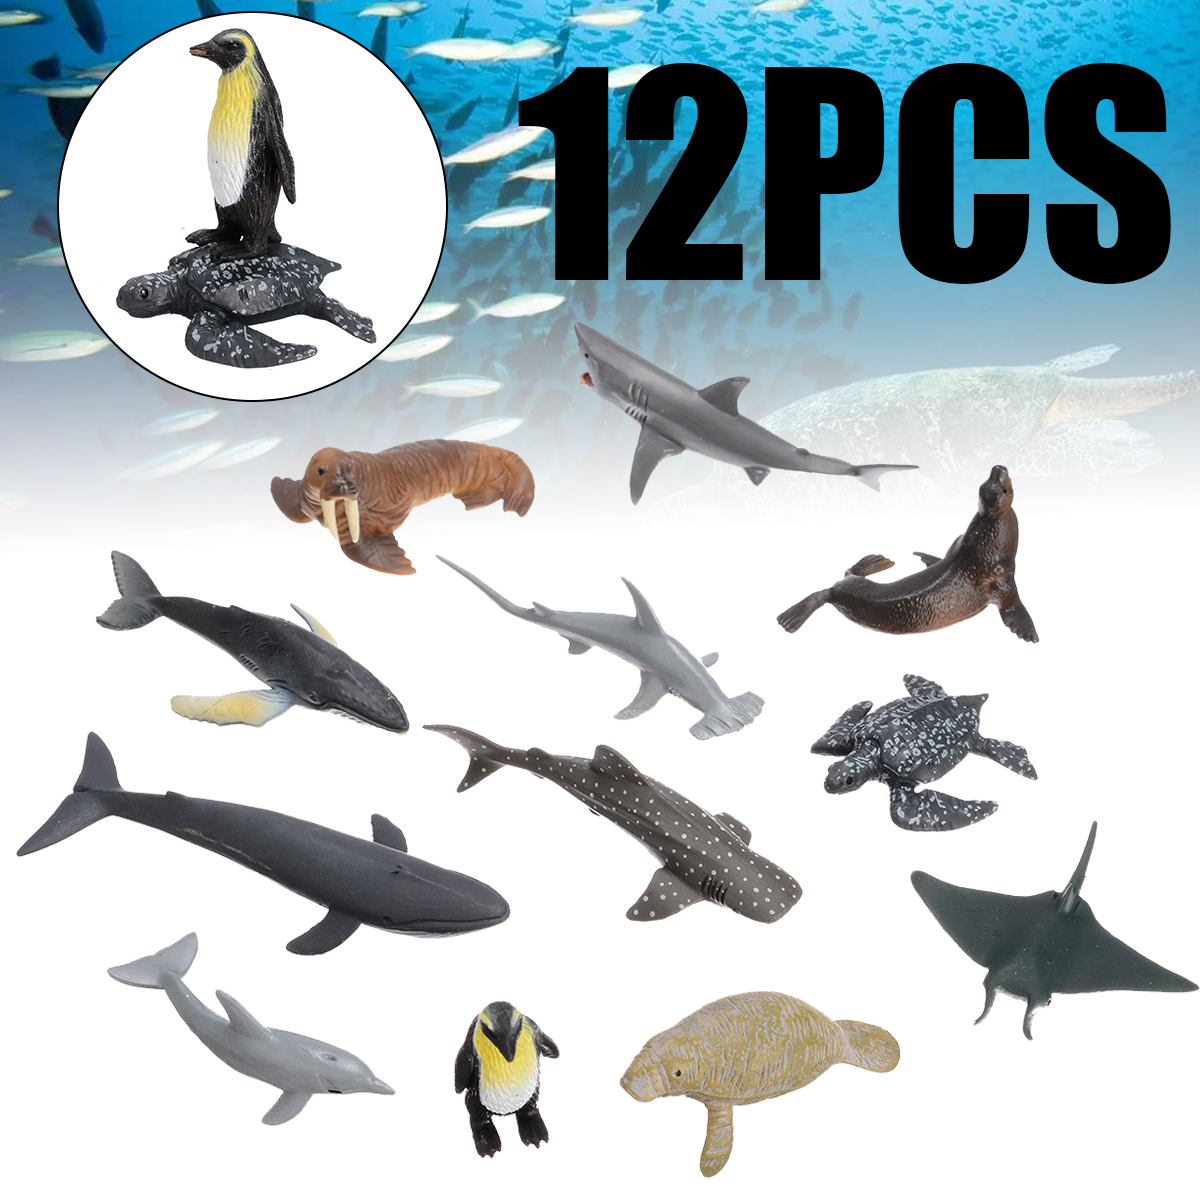 12pcs Ocean Sea Life Simulation Animal Model Sets Shark Whale Turtle Crab Dolphin Action Toy Figures Kids Educational Toys